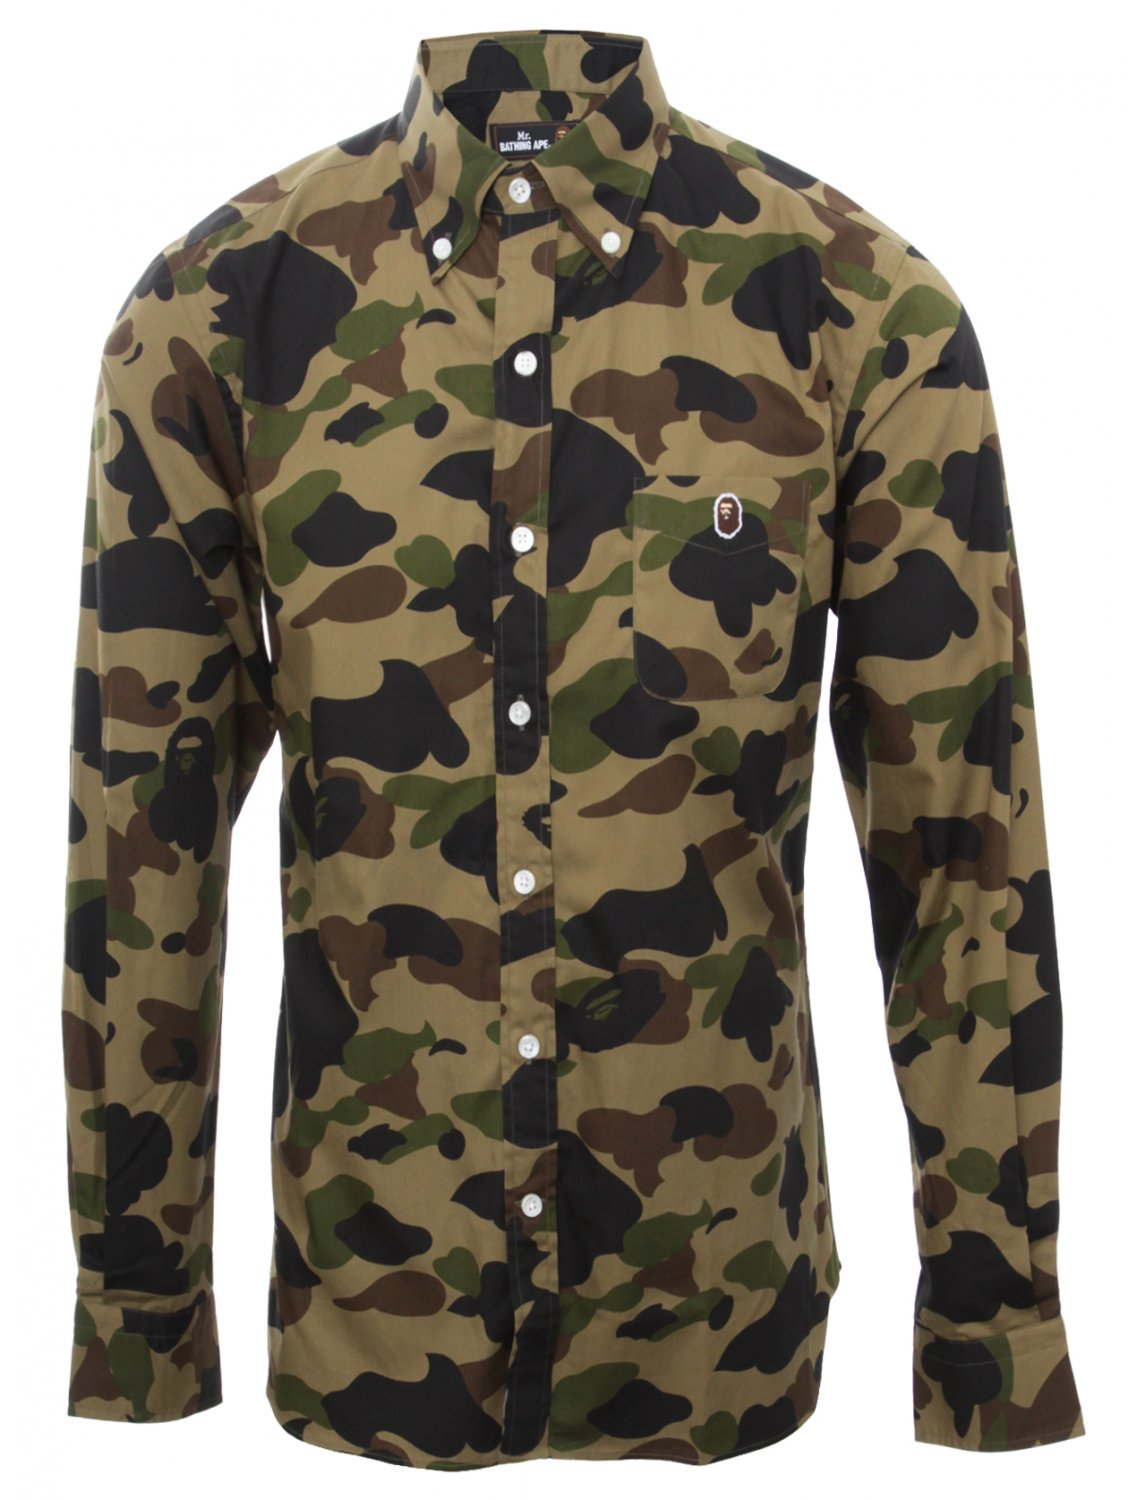 Mr Bathing Ape Camouflage Shirt With Ape Print In Green